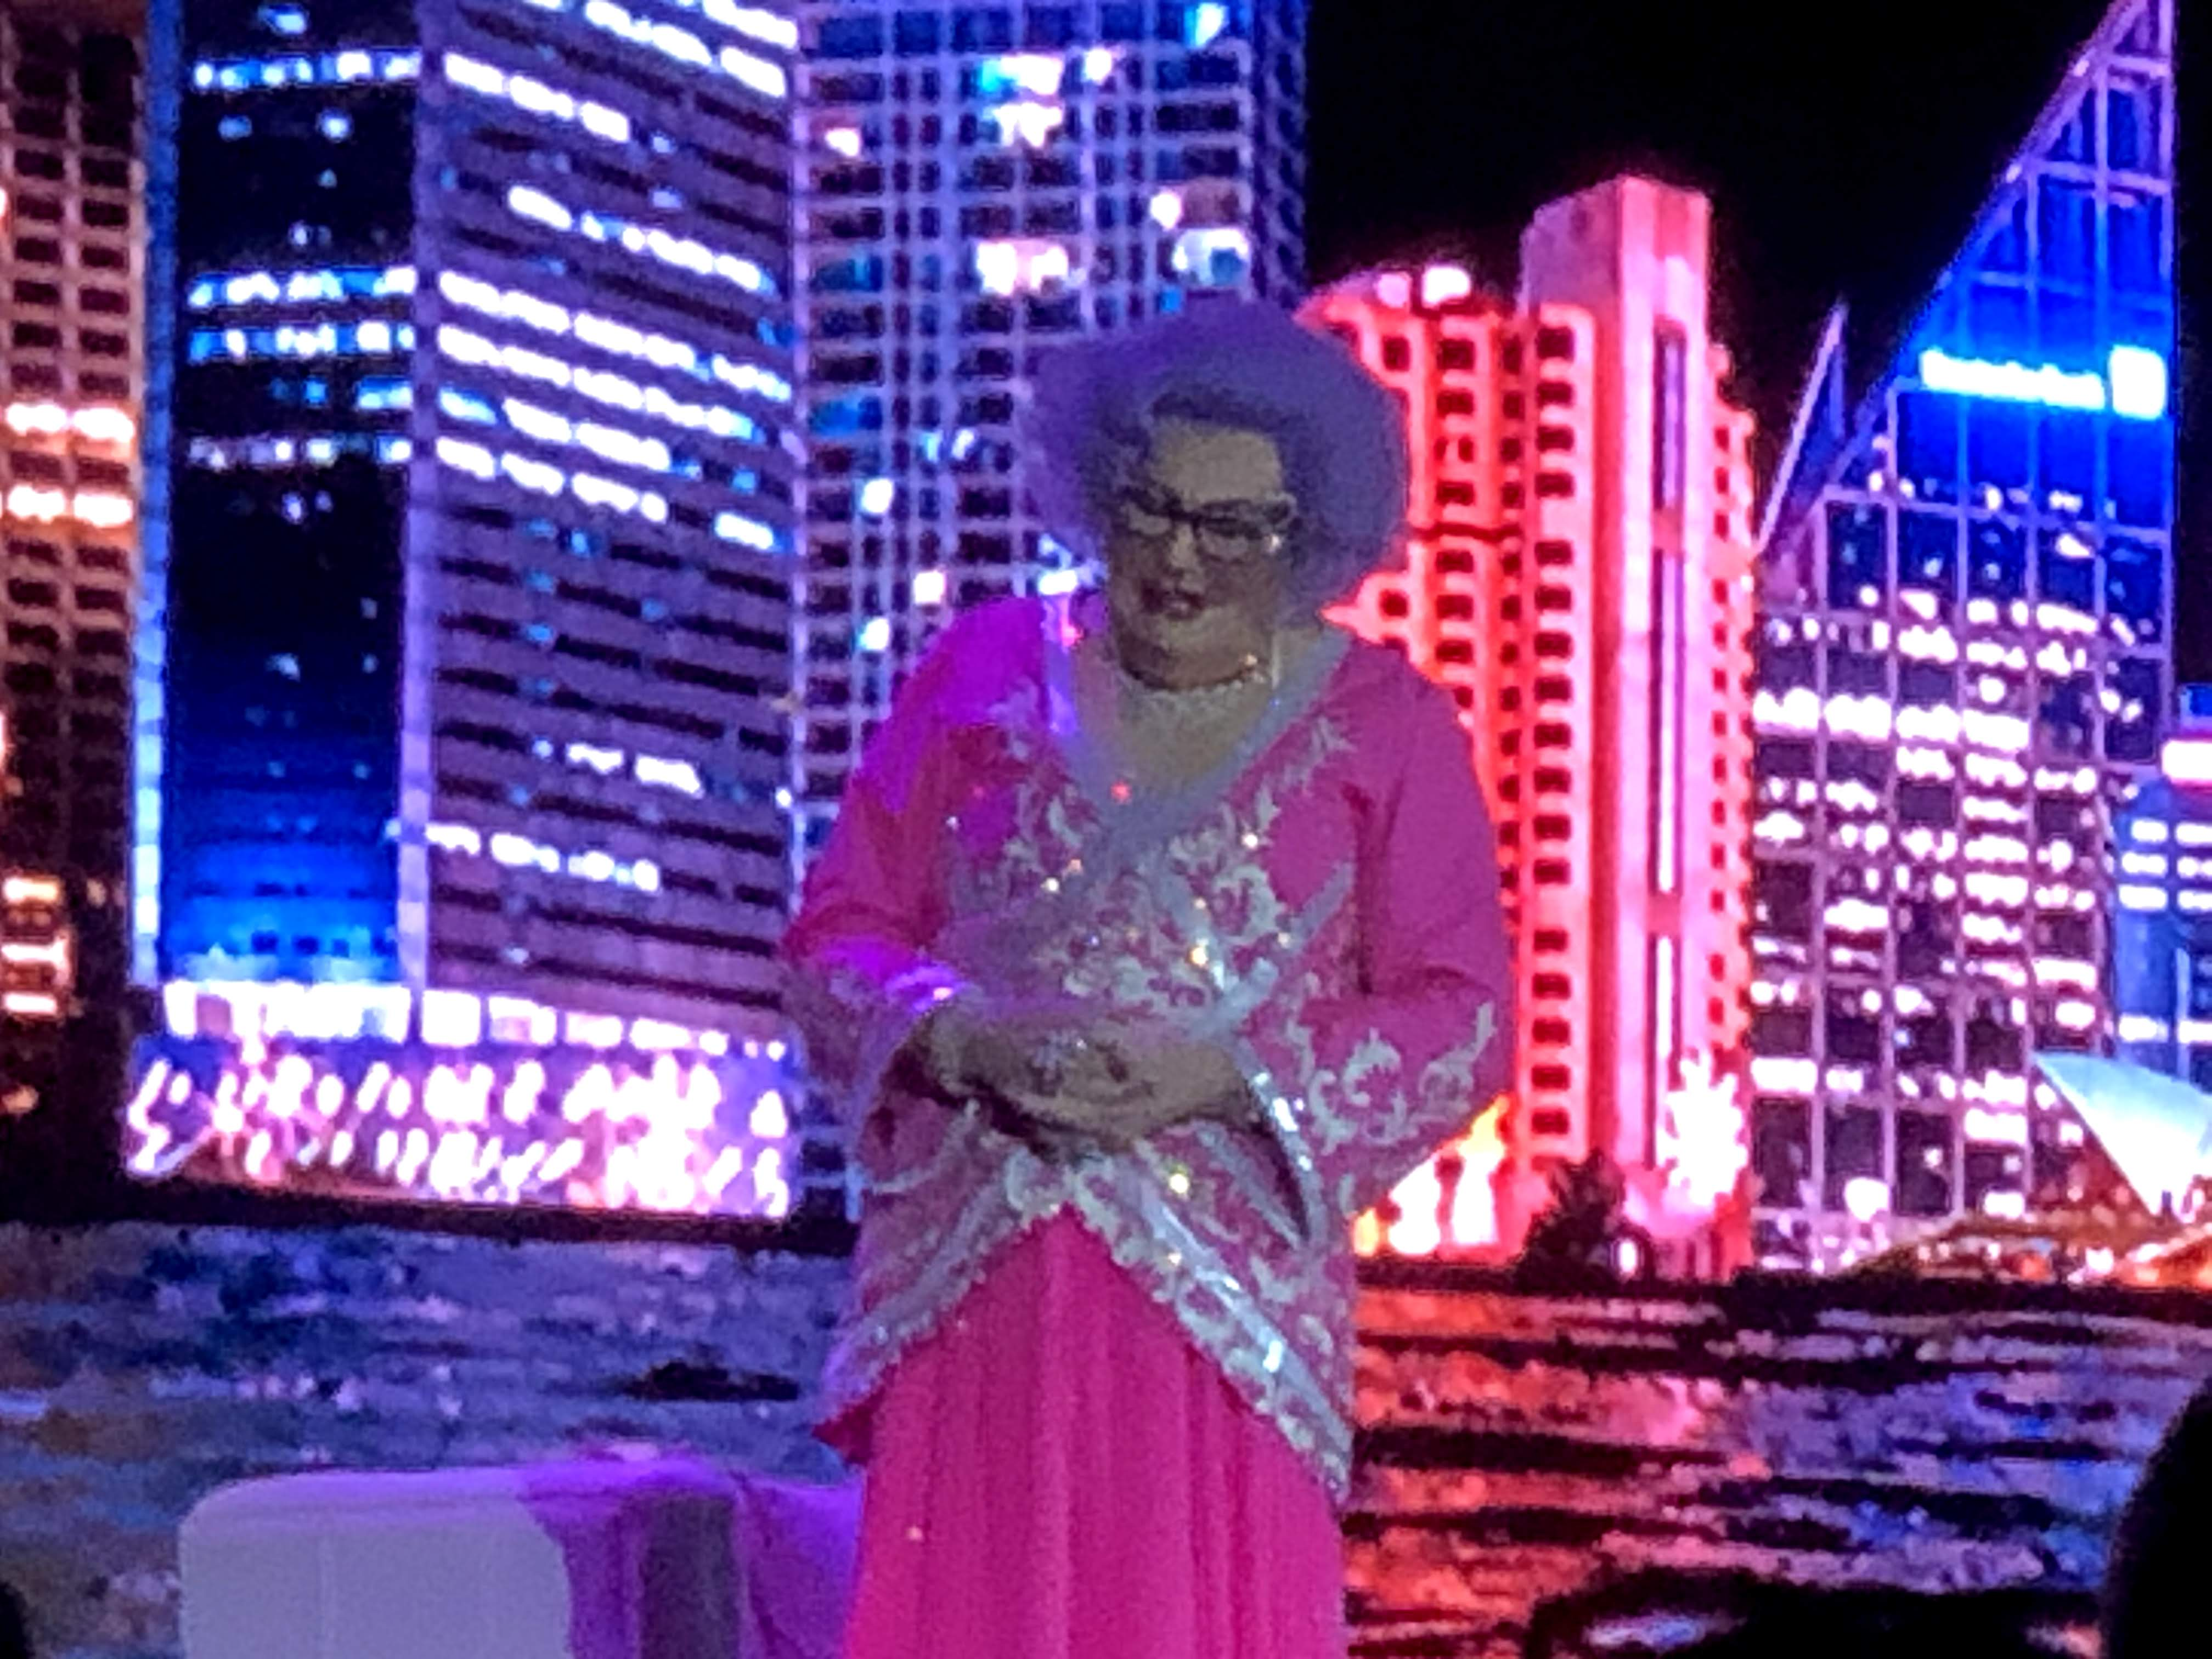 Dame Edna delivers her lessons on life (and systems)